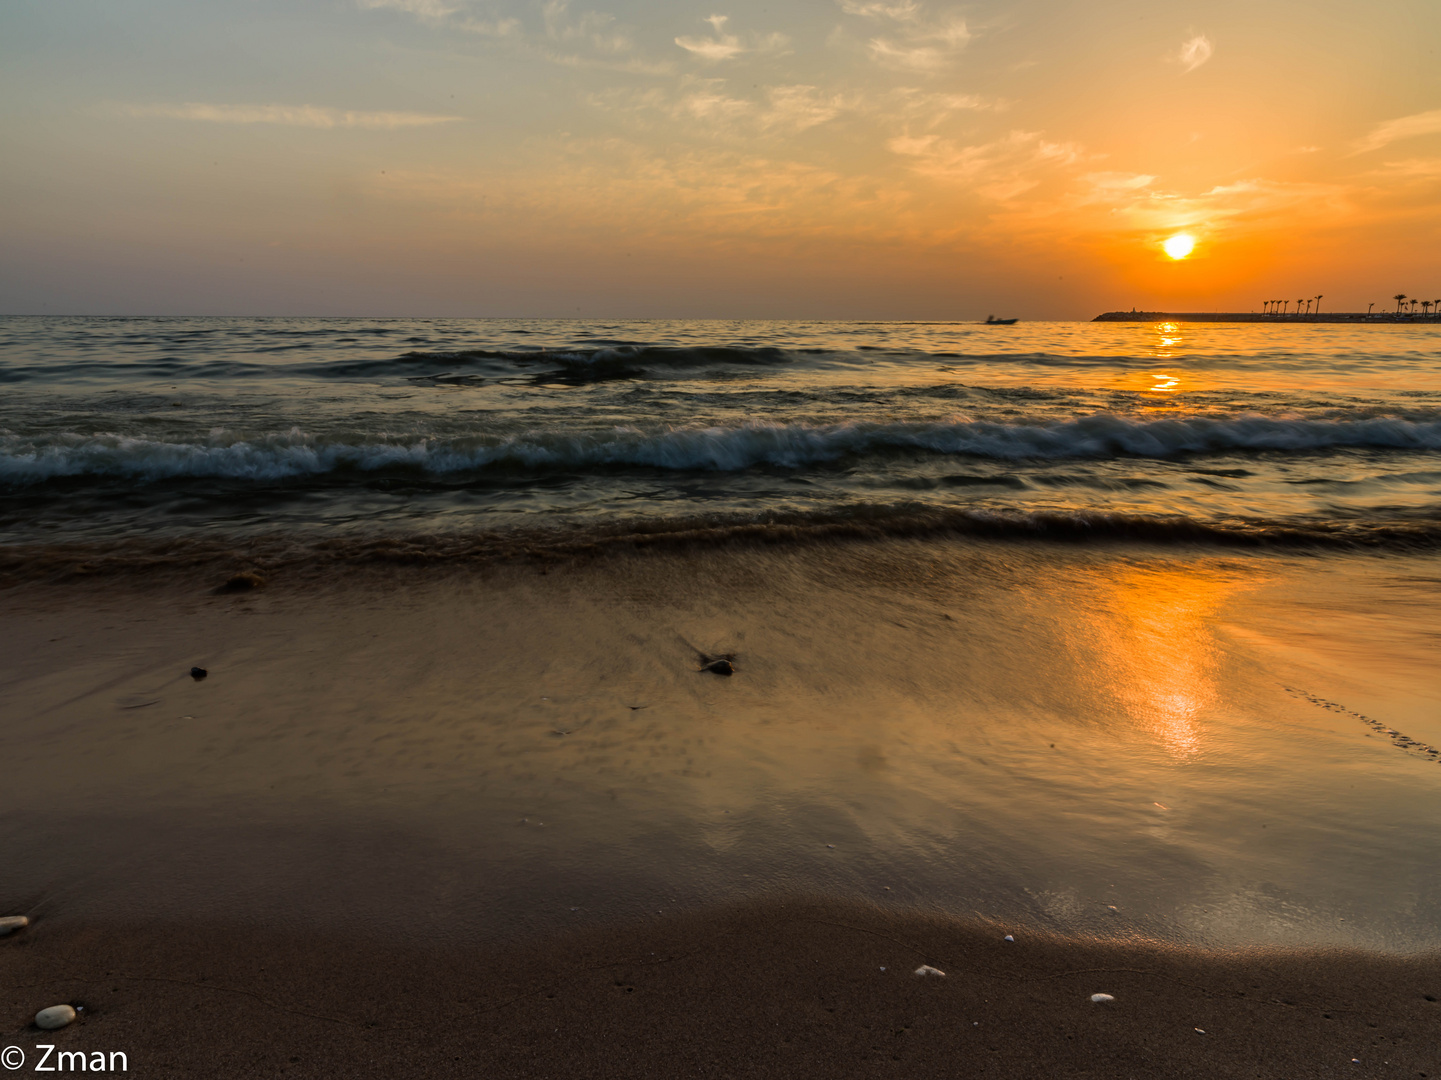 Sunset, Sea and Sand  B0002284-16